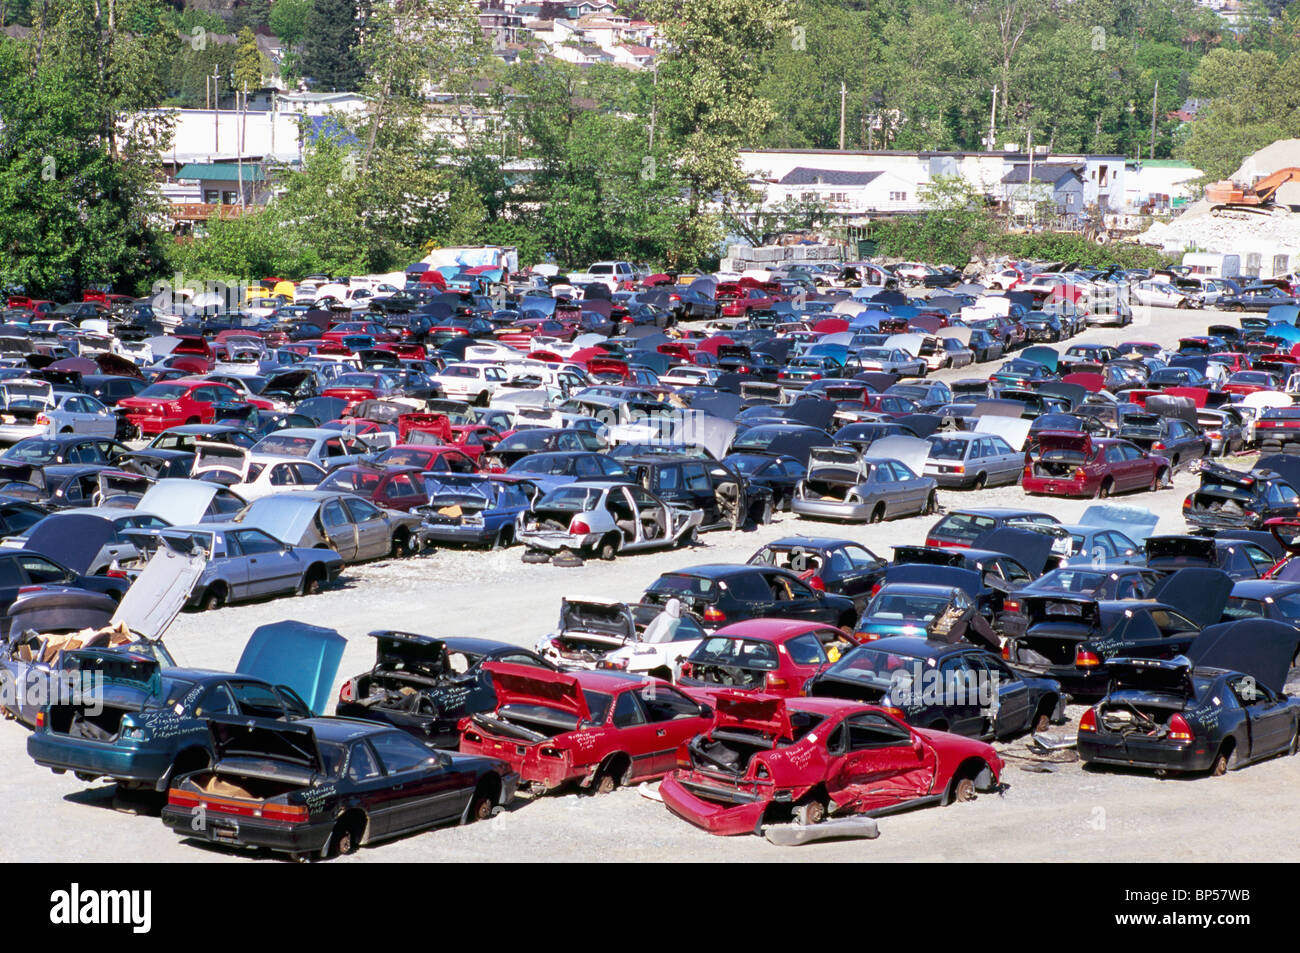 Wrecked Cars in Car Scrap Yard, Junkyard of Spare Used Auto Parts ...